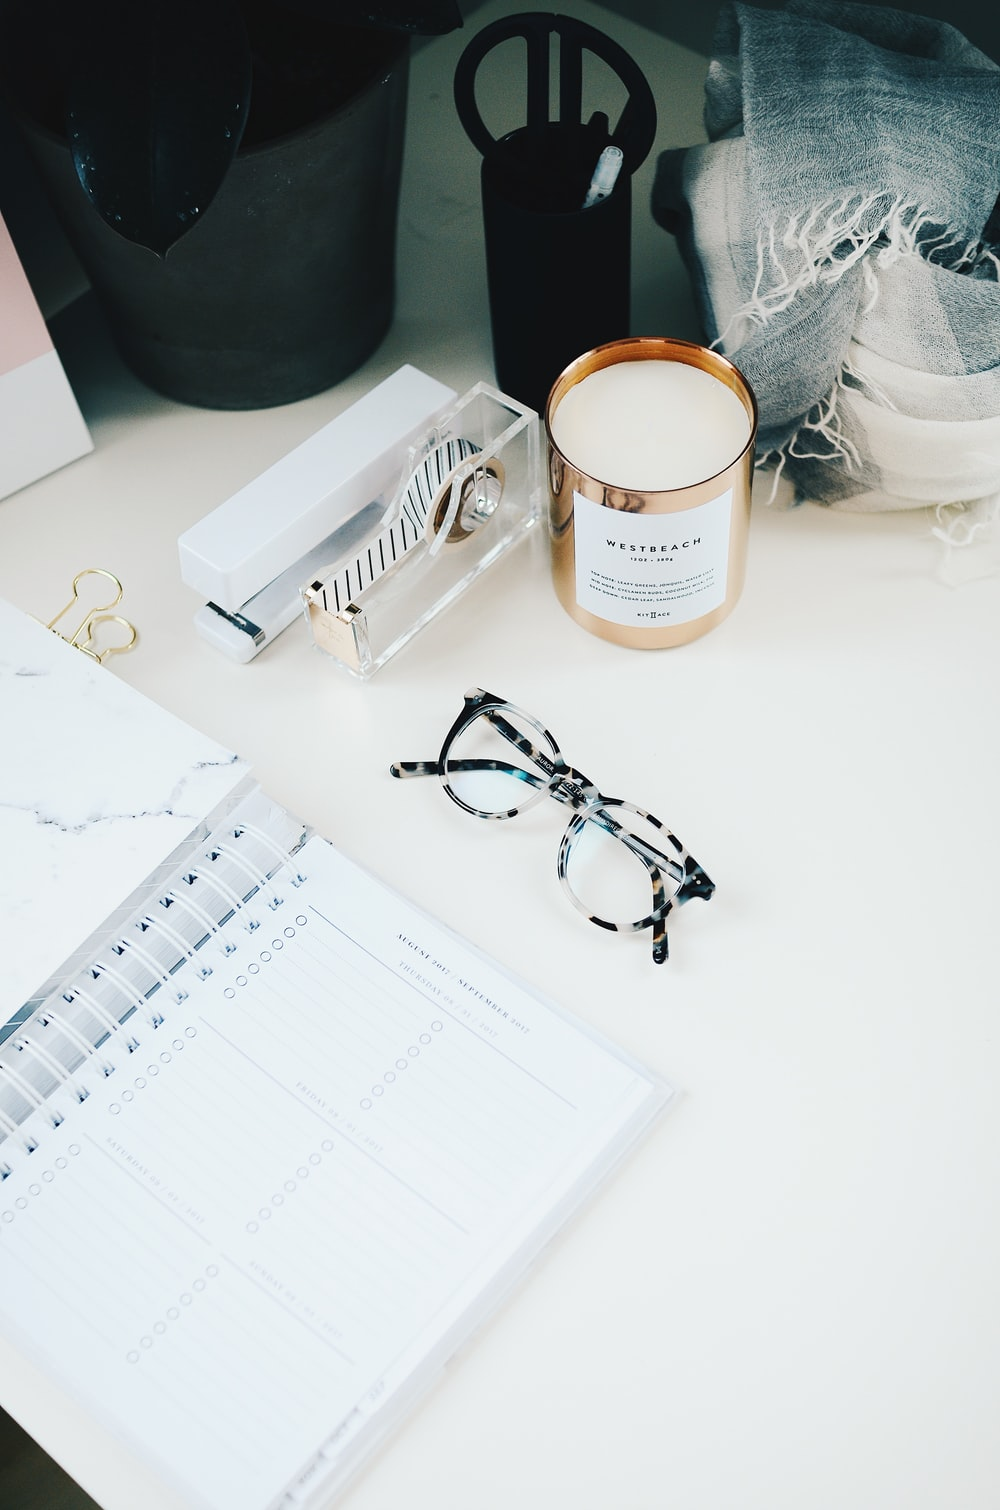 black framed eyeglasses beside spiral notebook